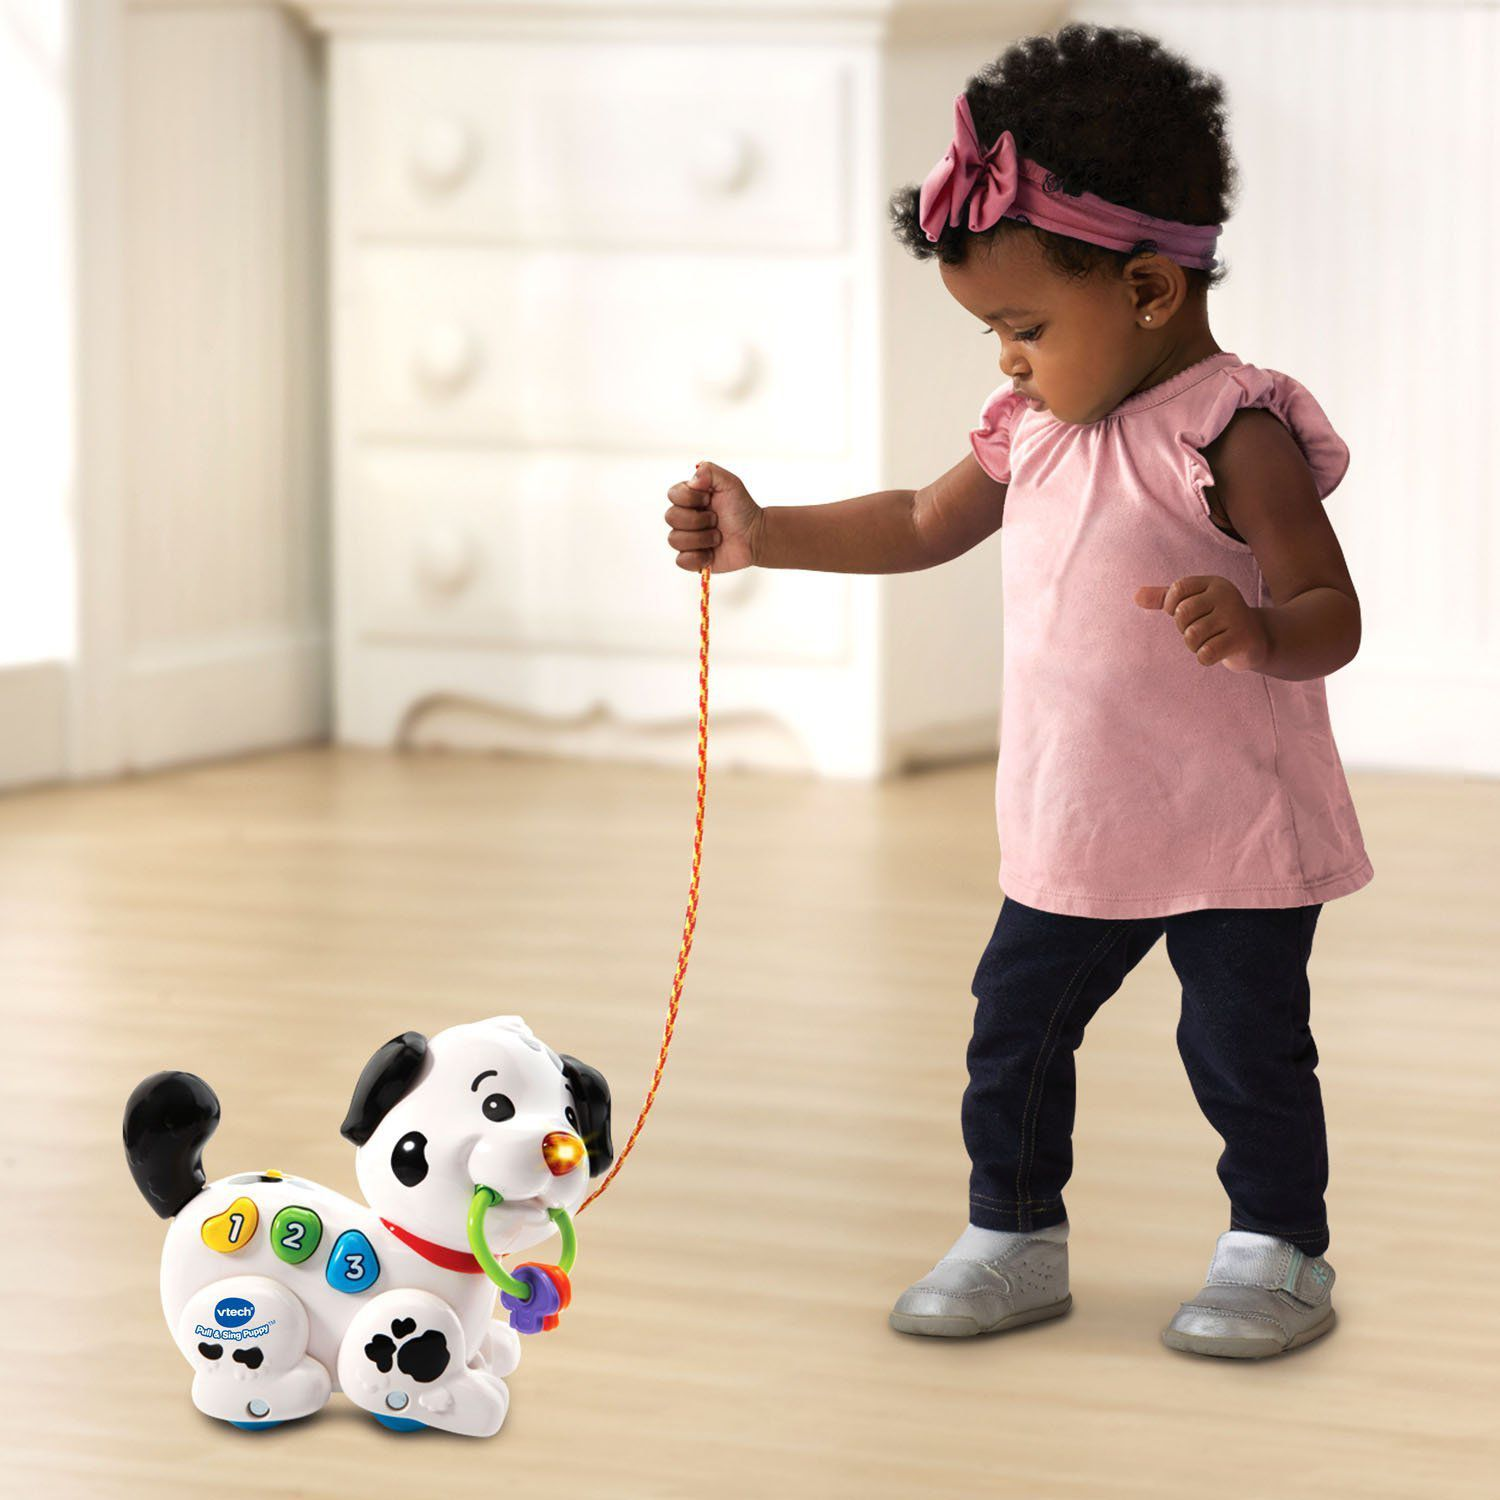 Electronic Toys For One Year Olds : The best toys to buy for one year olds in